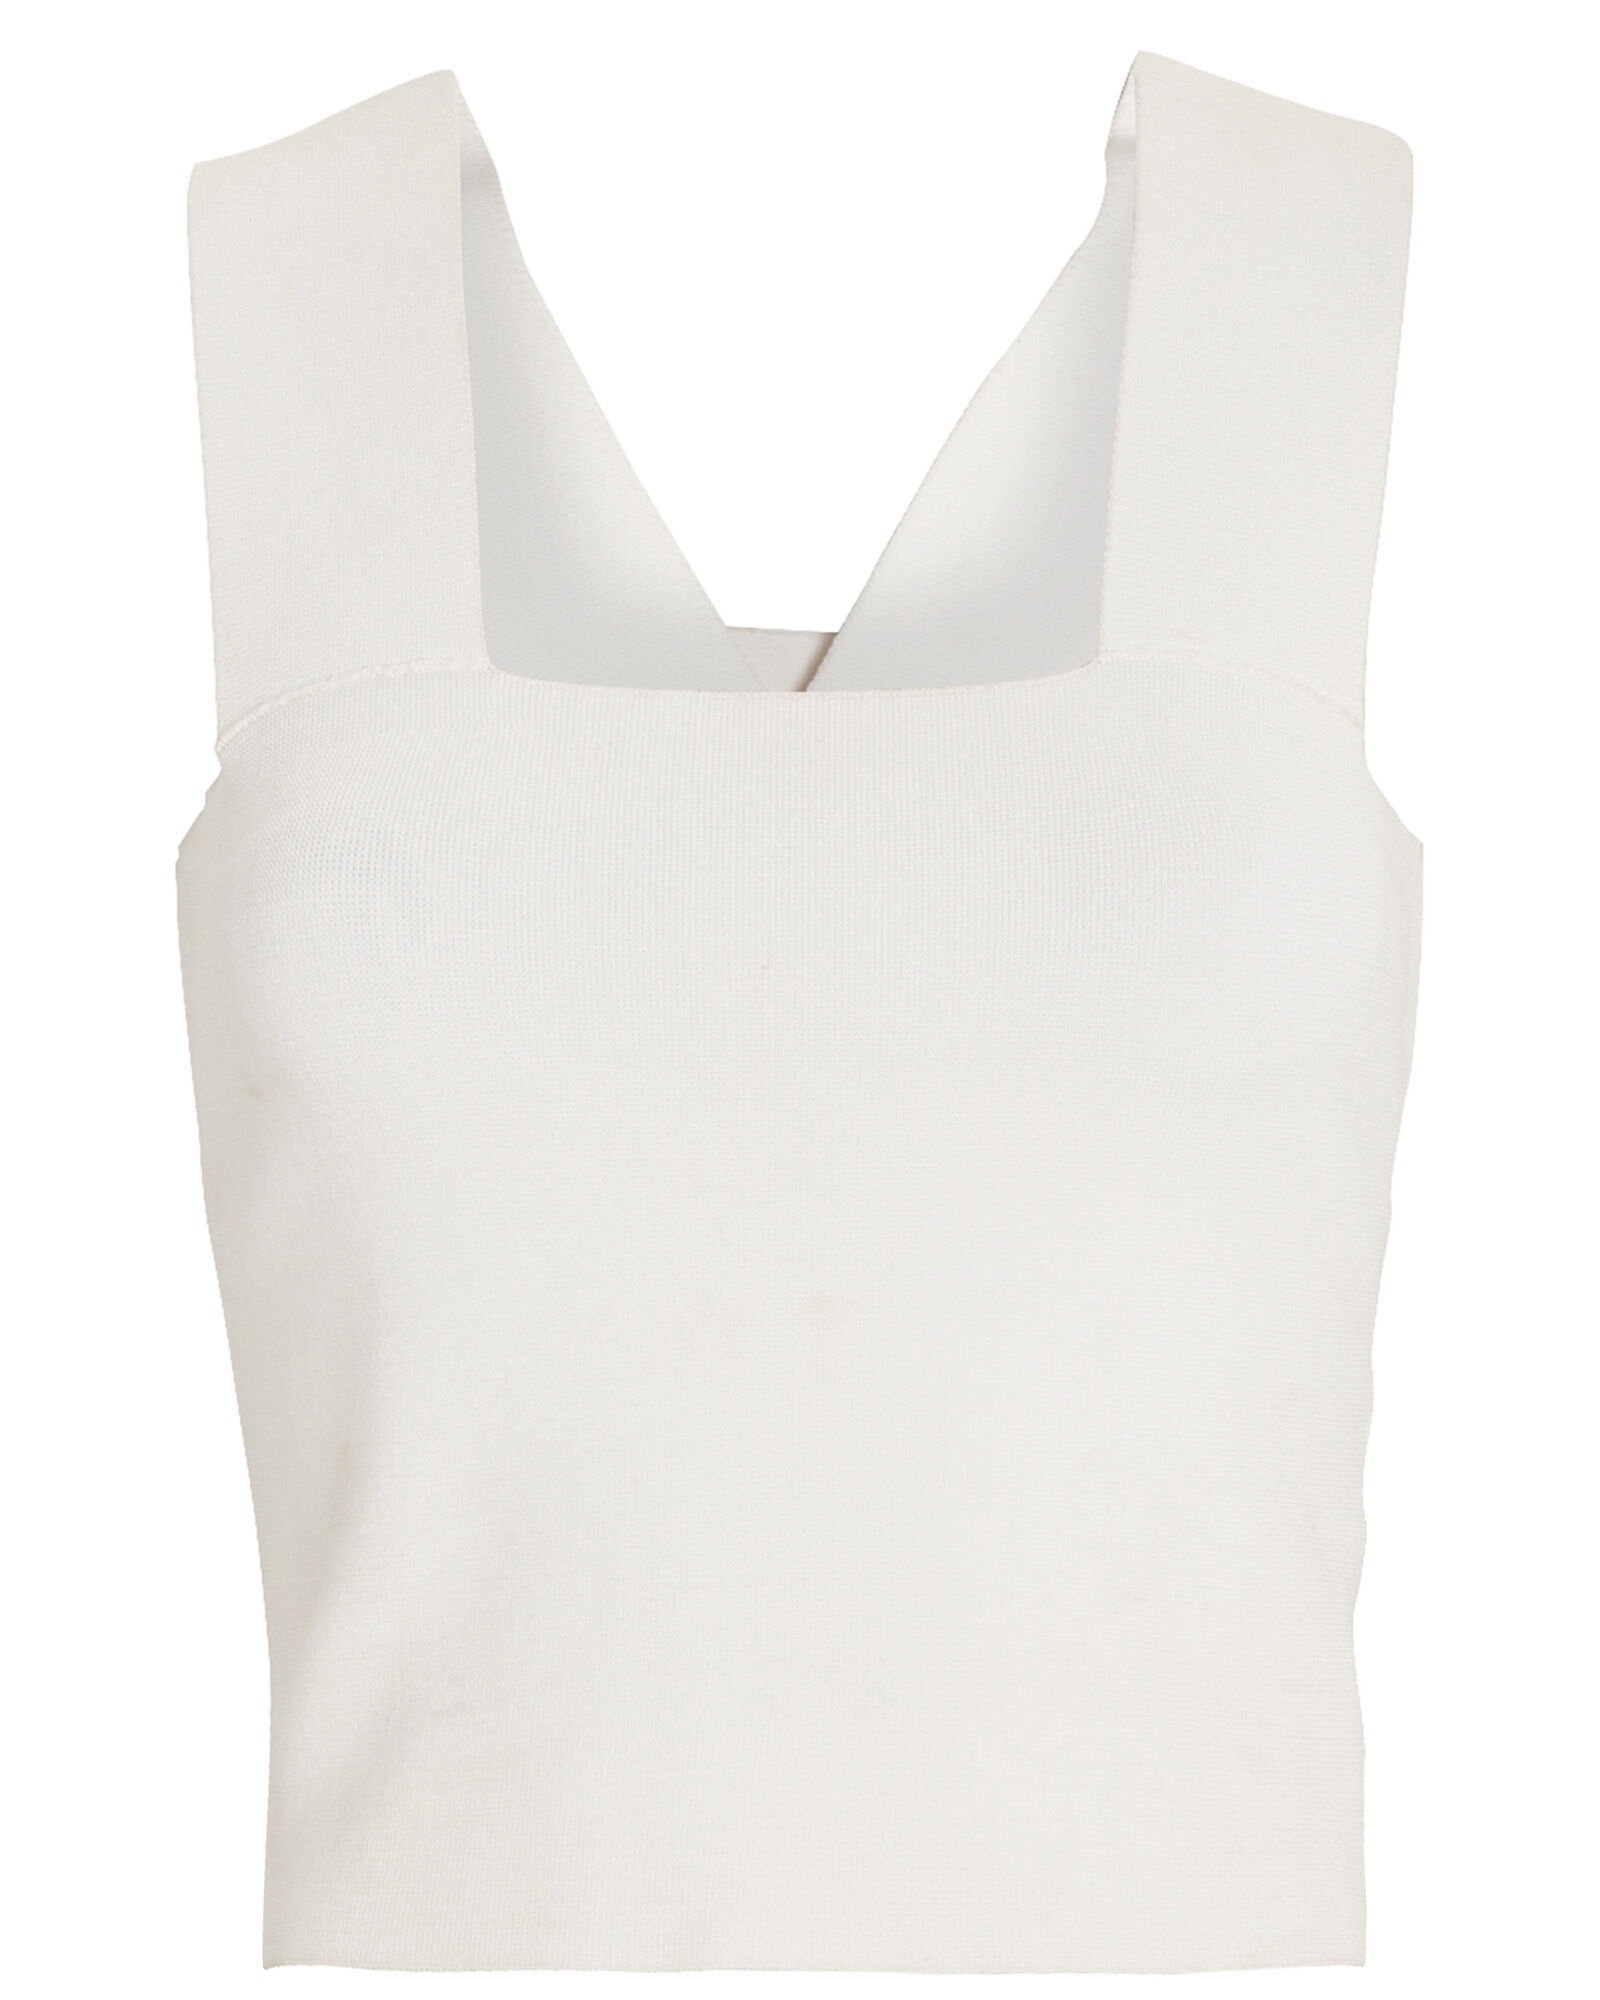 Lia Cropped Tank Top, White, hi-res